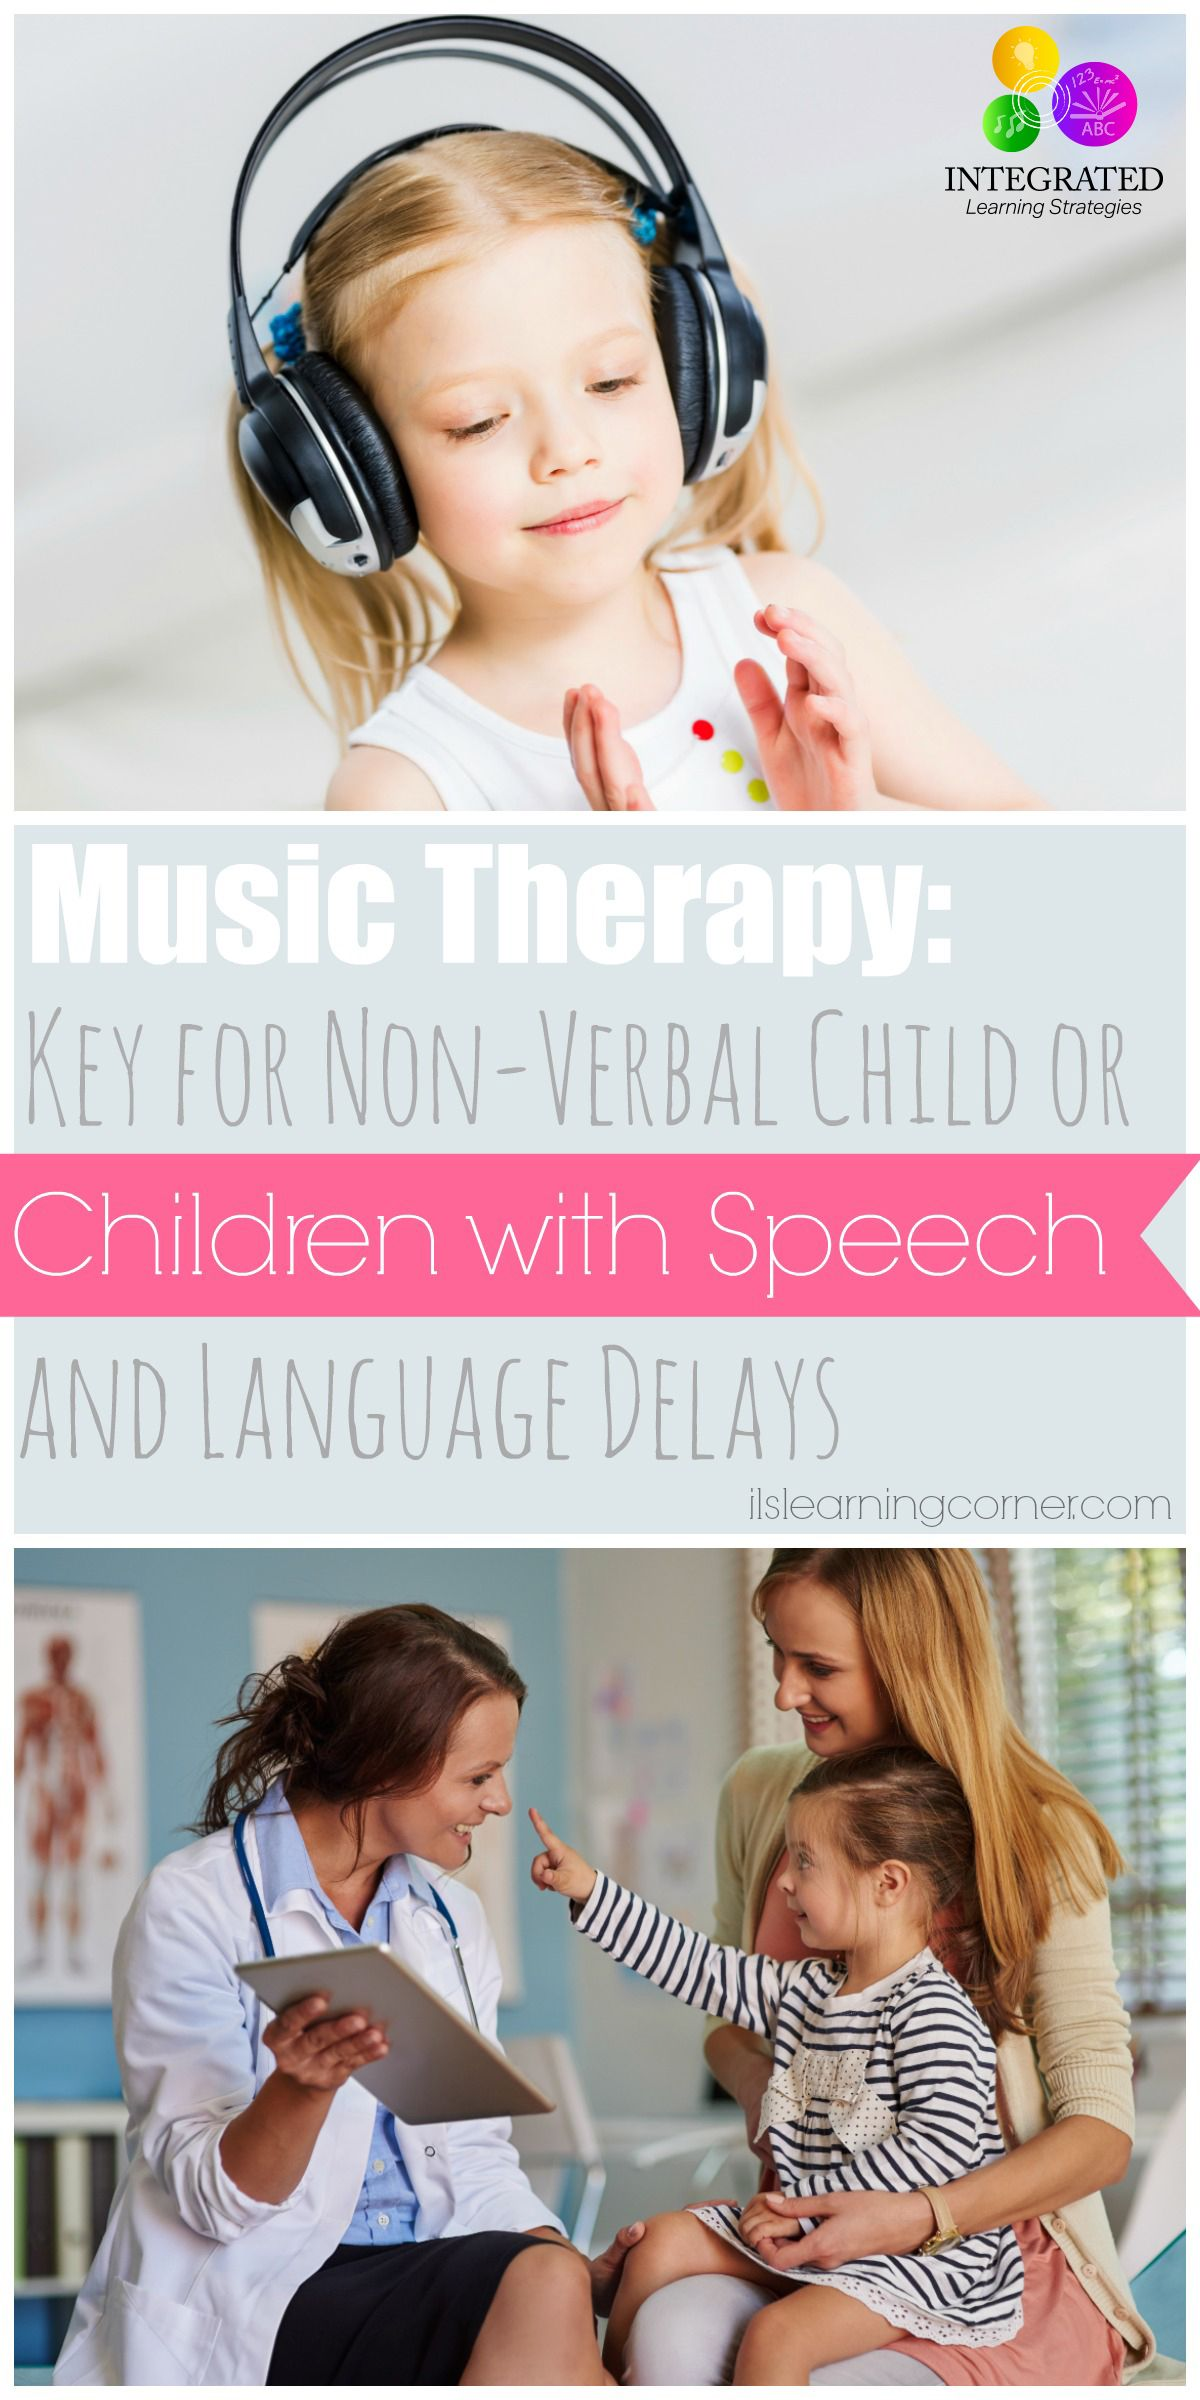 Music therapy: what to listen to the child